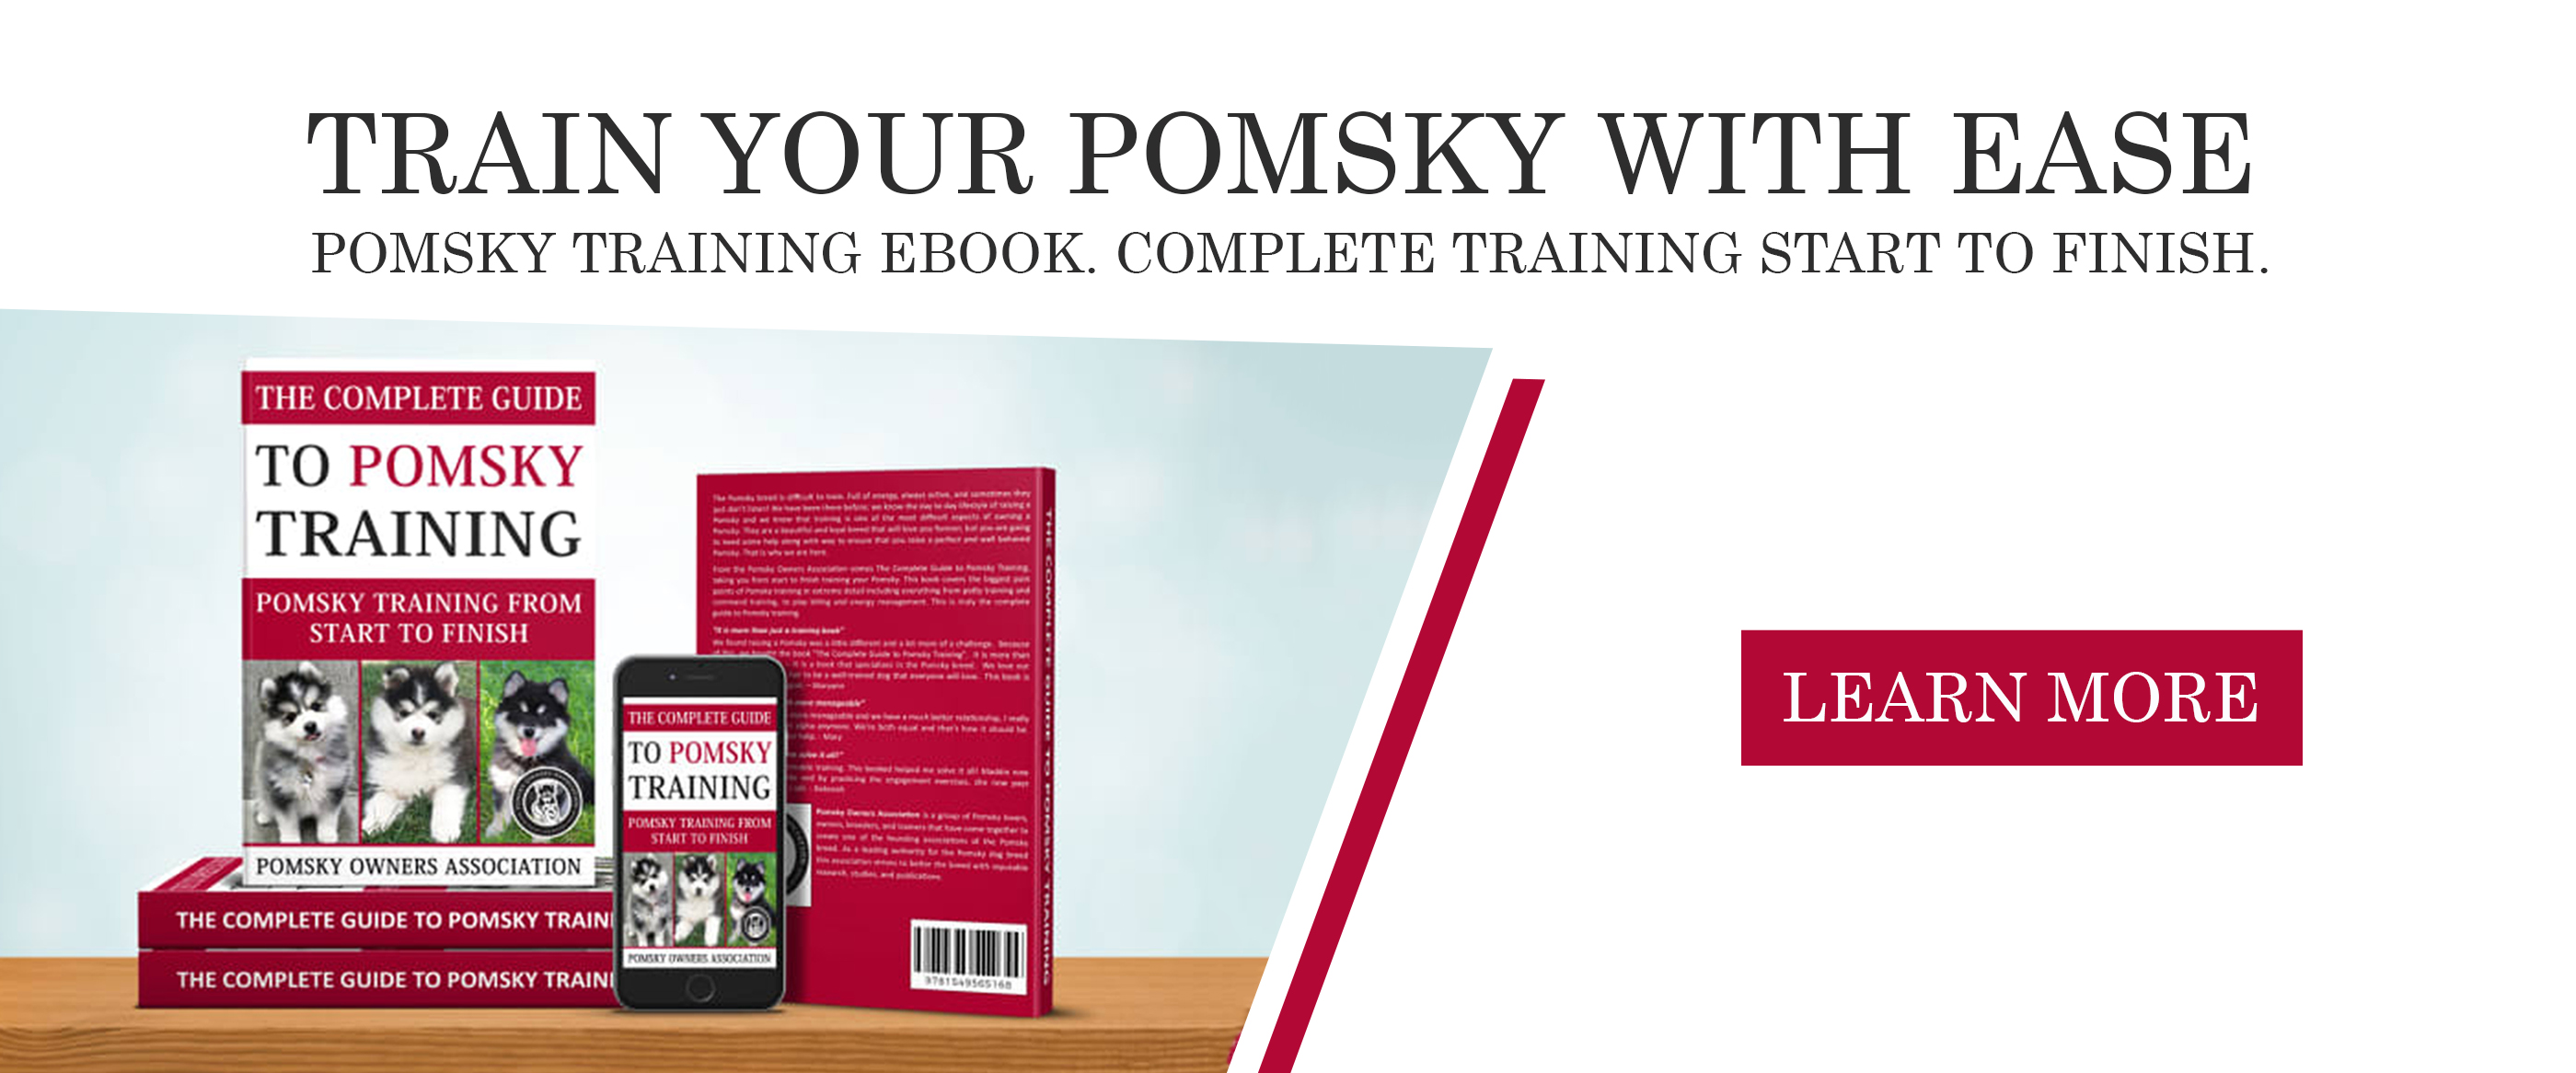 Pomsky training eBook for sale